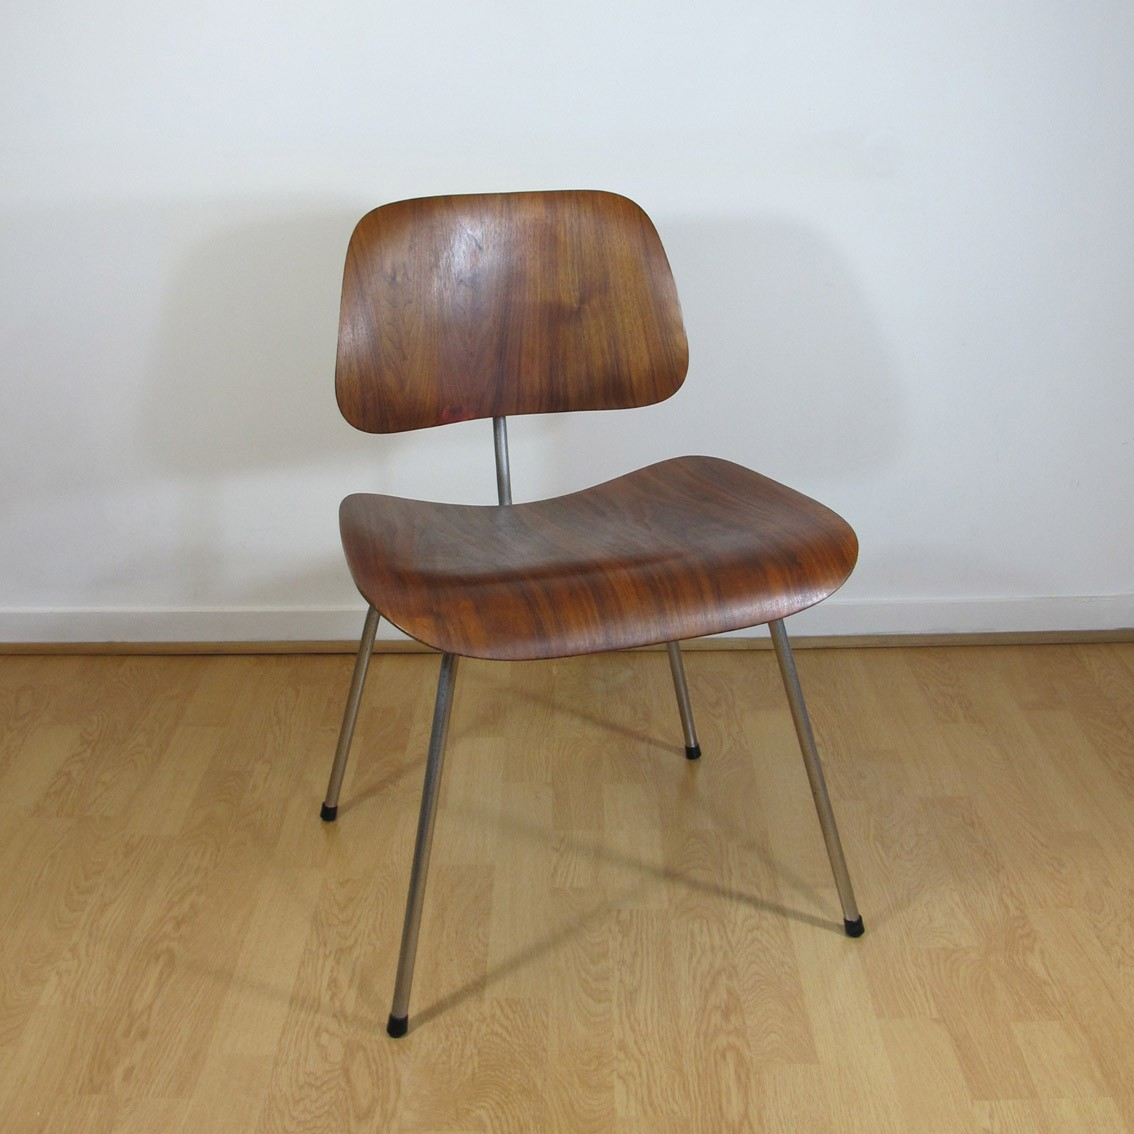 Eames Plywood Chair Plywood Chair Dcm By Charles Eames Evans Edition Cornershop Design